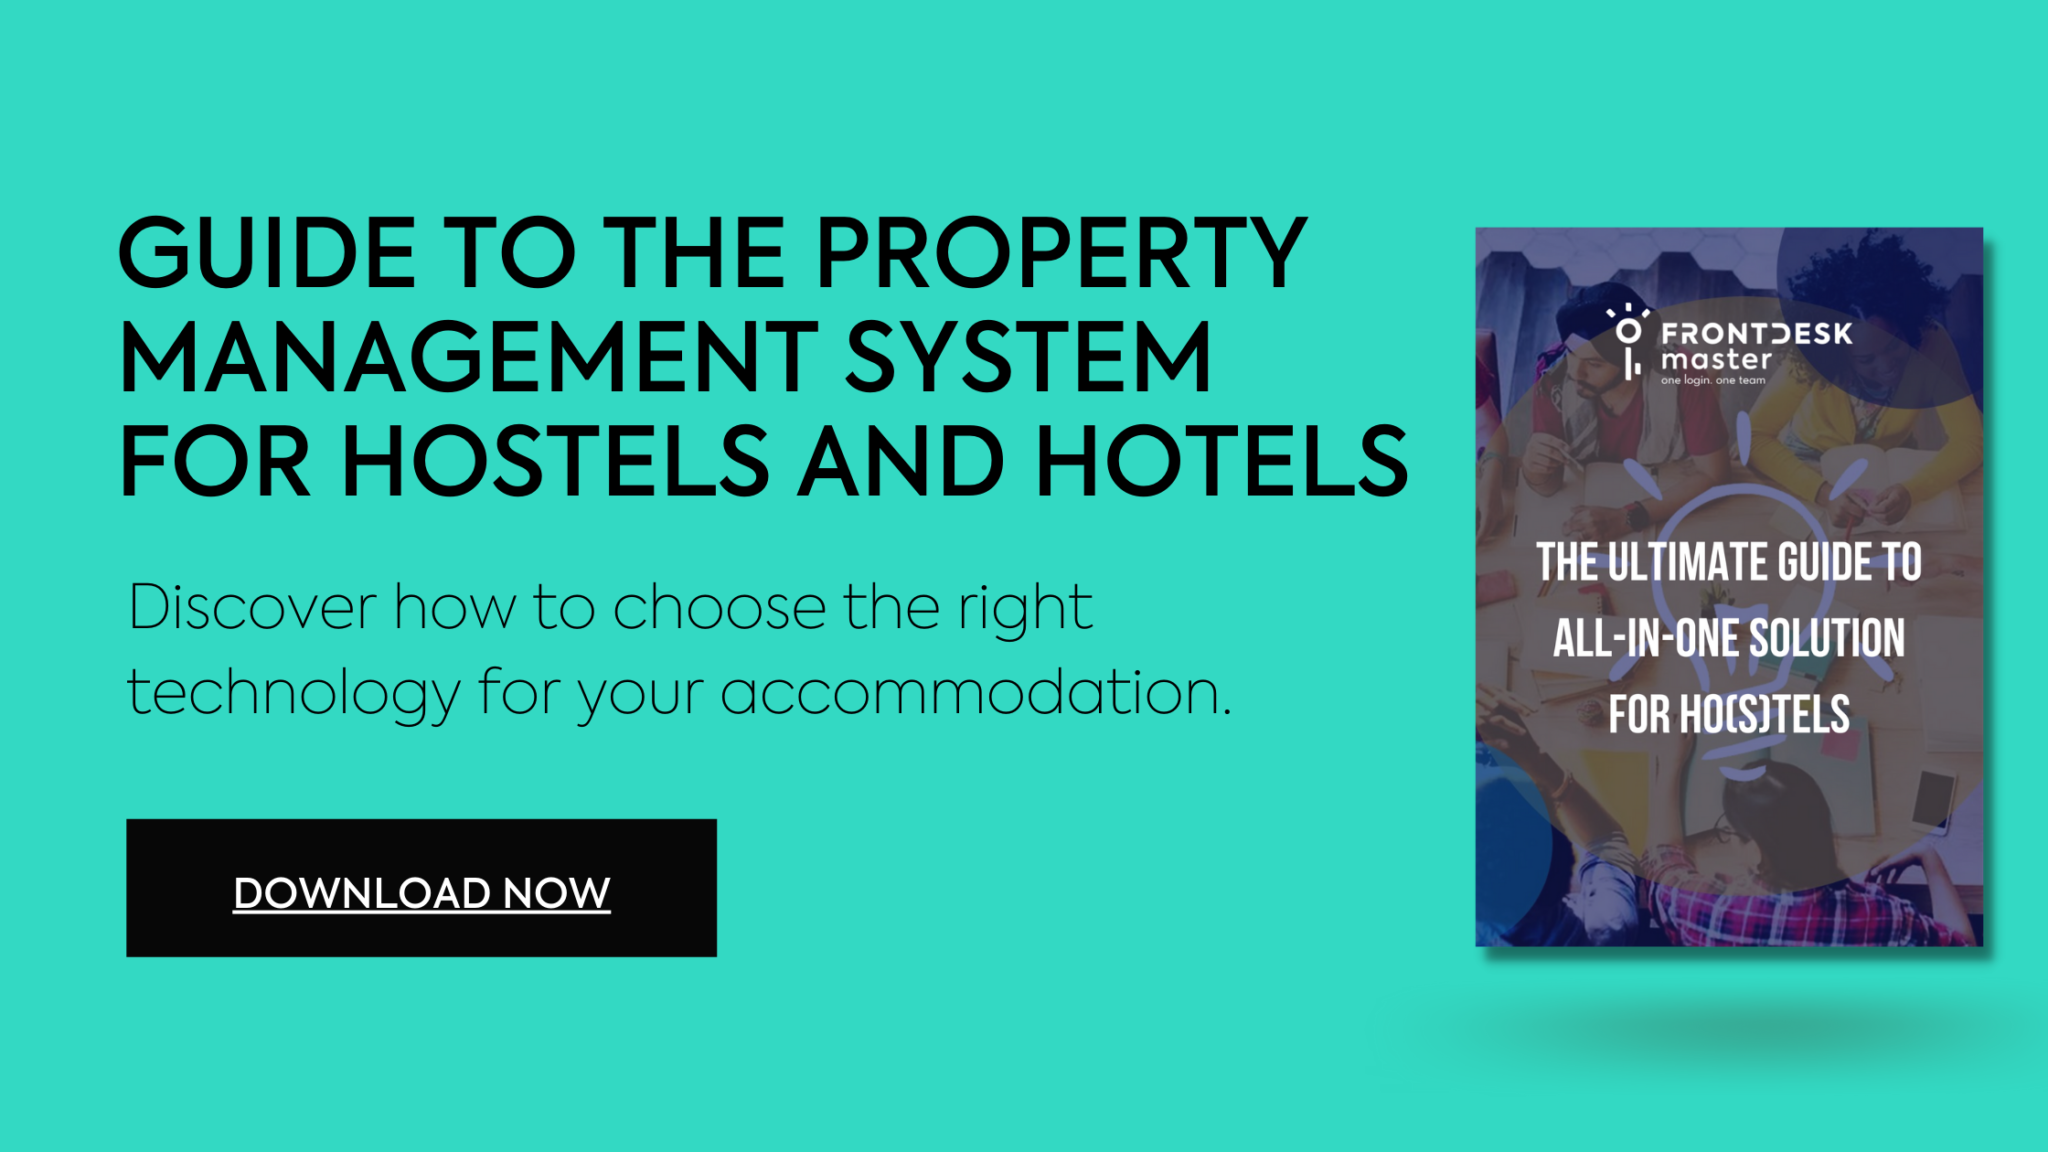 download guide to property management systems